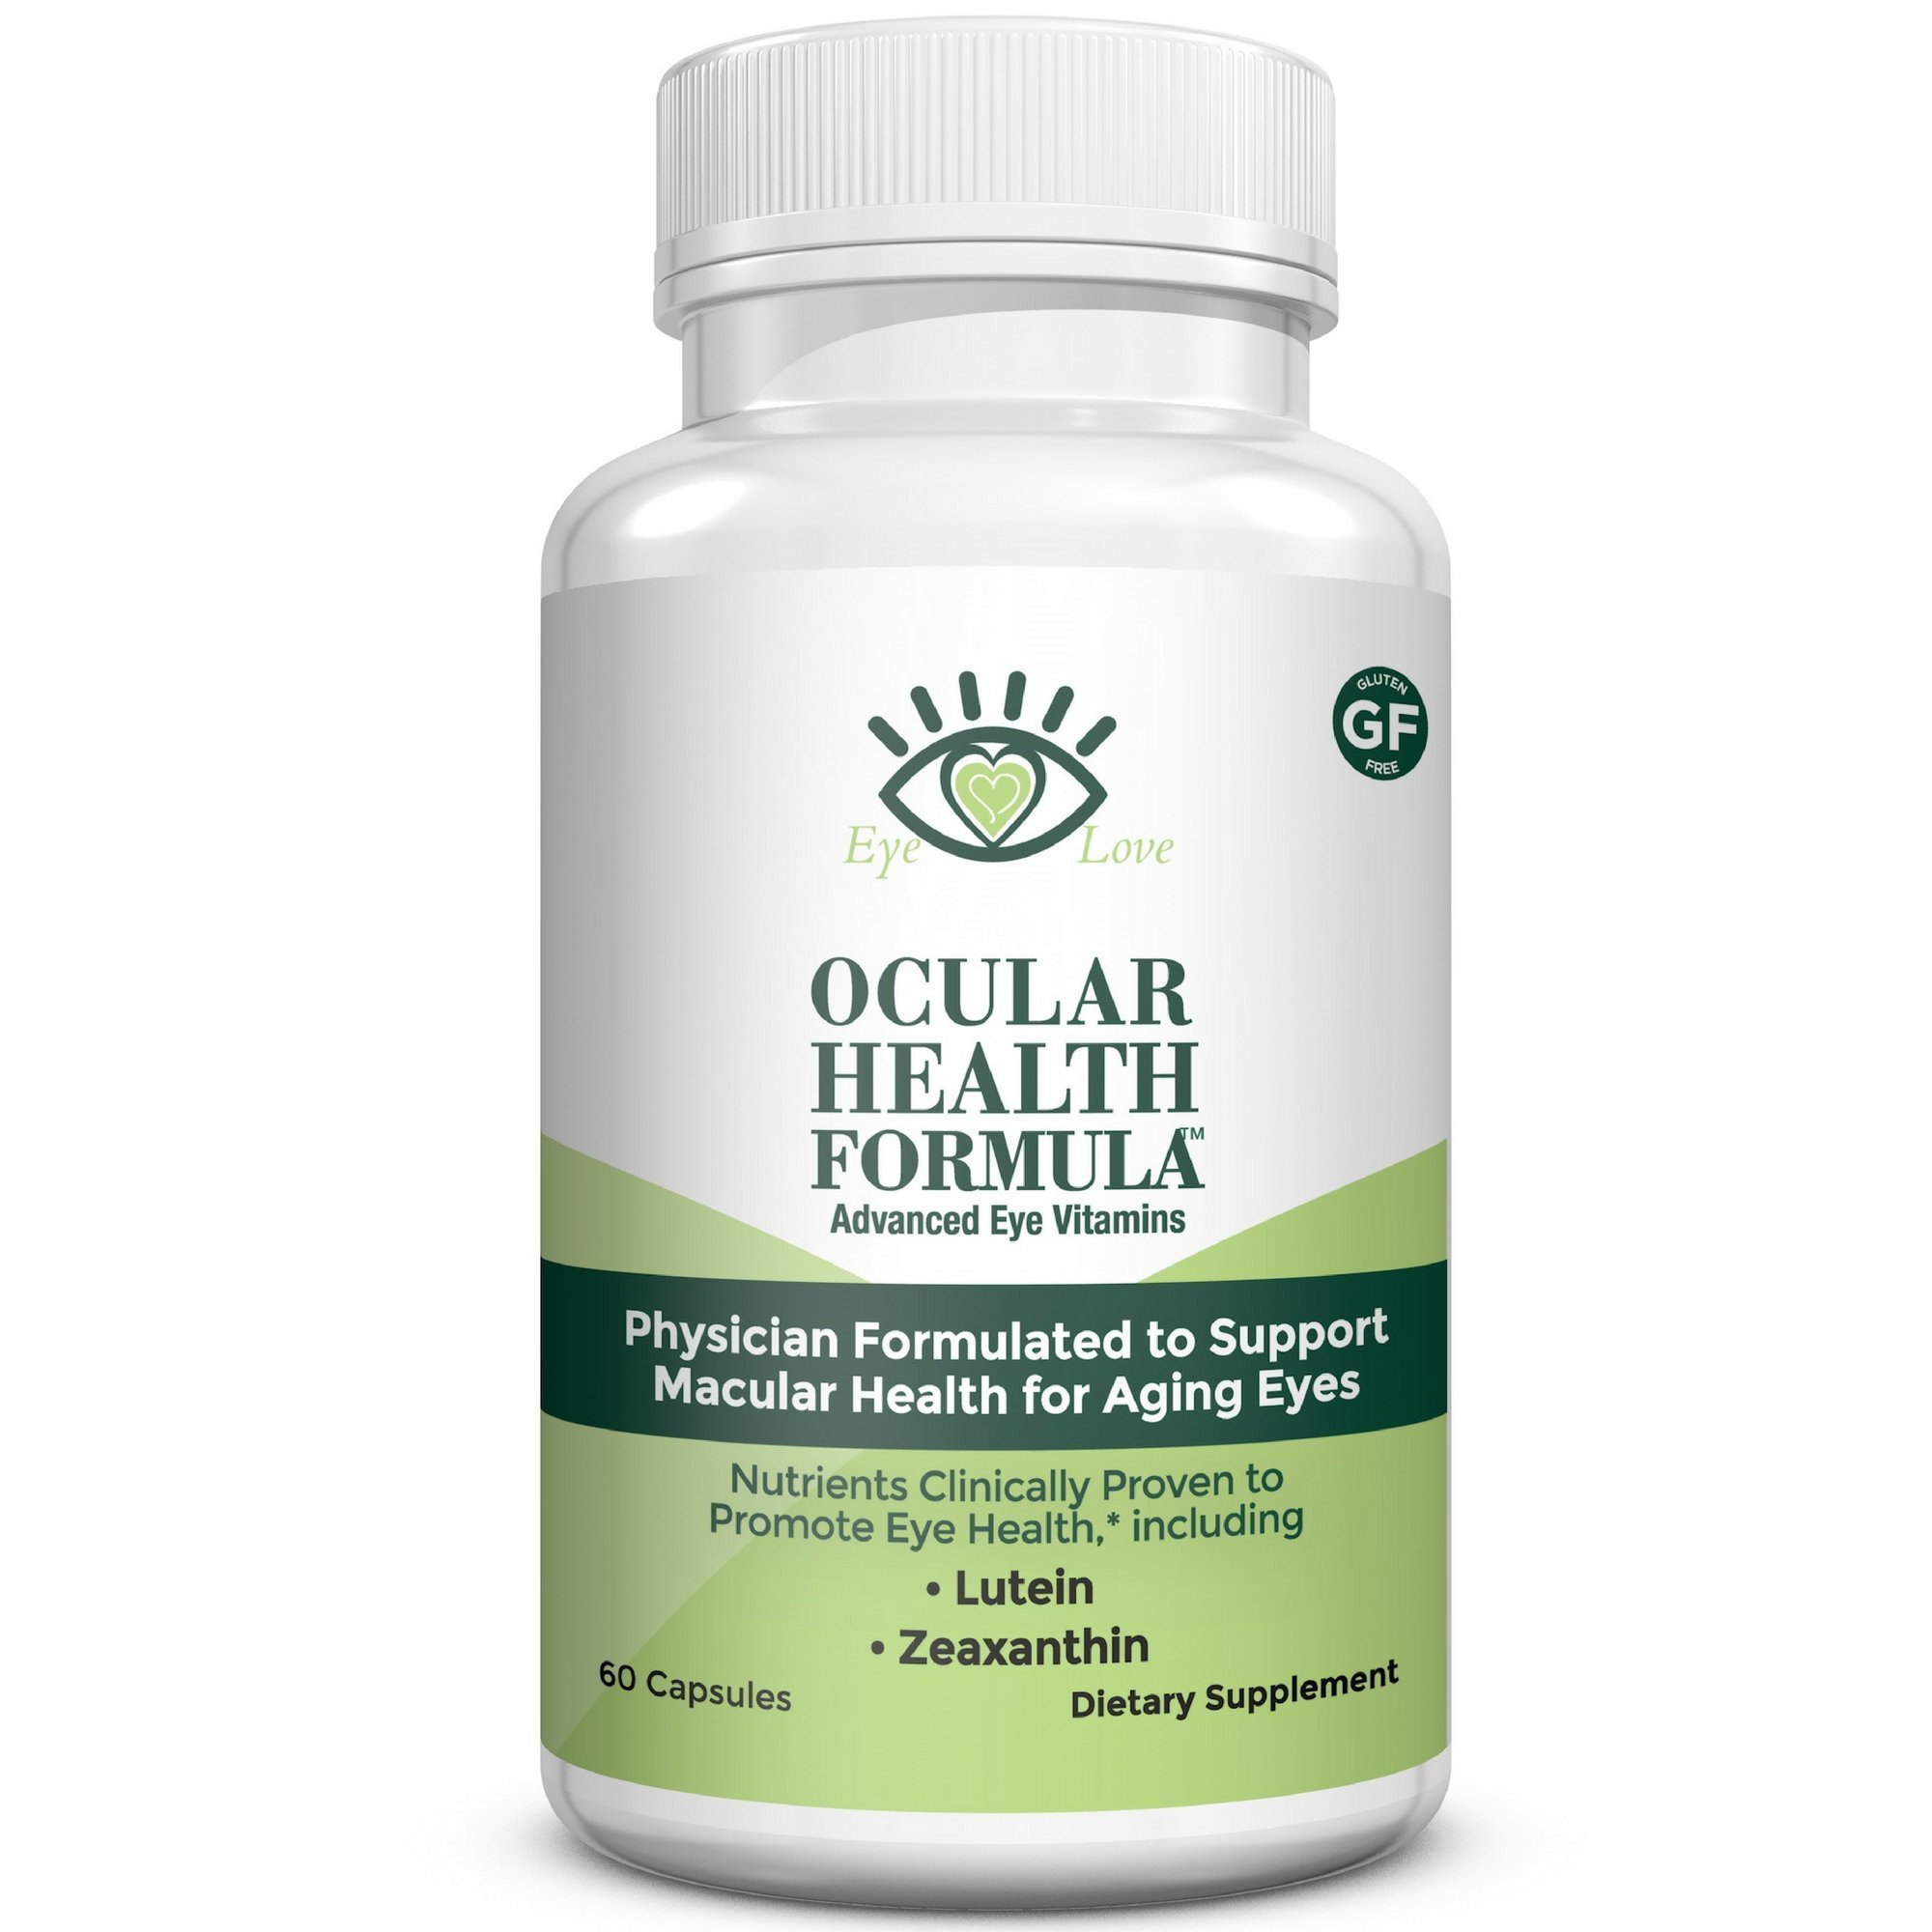 AREDS 2 Formula, Packed with Lutein, Zeaxanthin, and Astaxanthin, Ocular Health Formula by Eye Love, Optometrist Developed to Follow AREDS-2, Complete Macula and Retina Support (30 Day Supply)